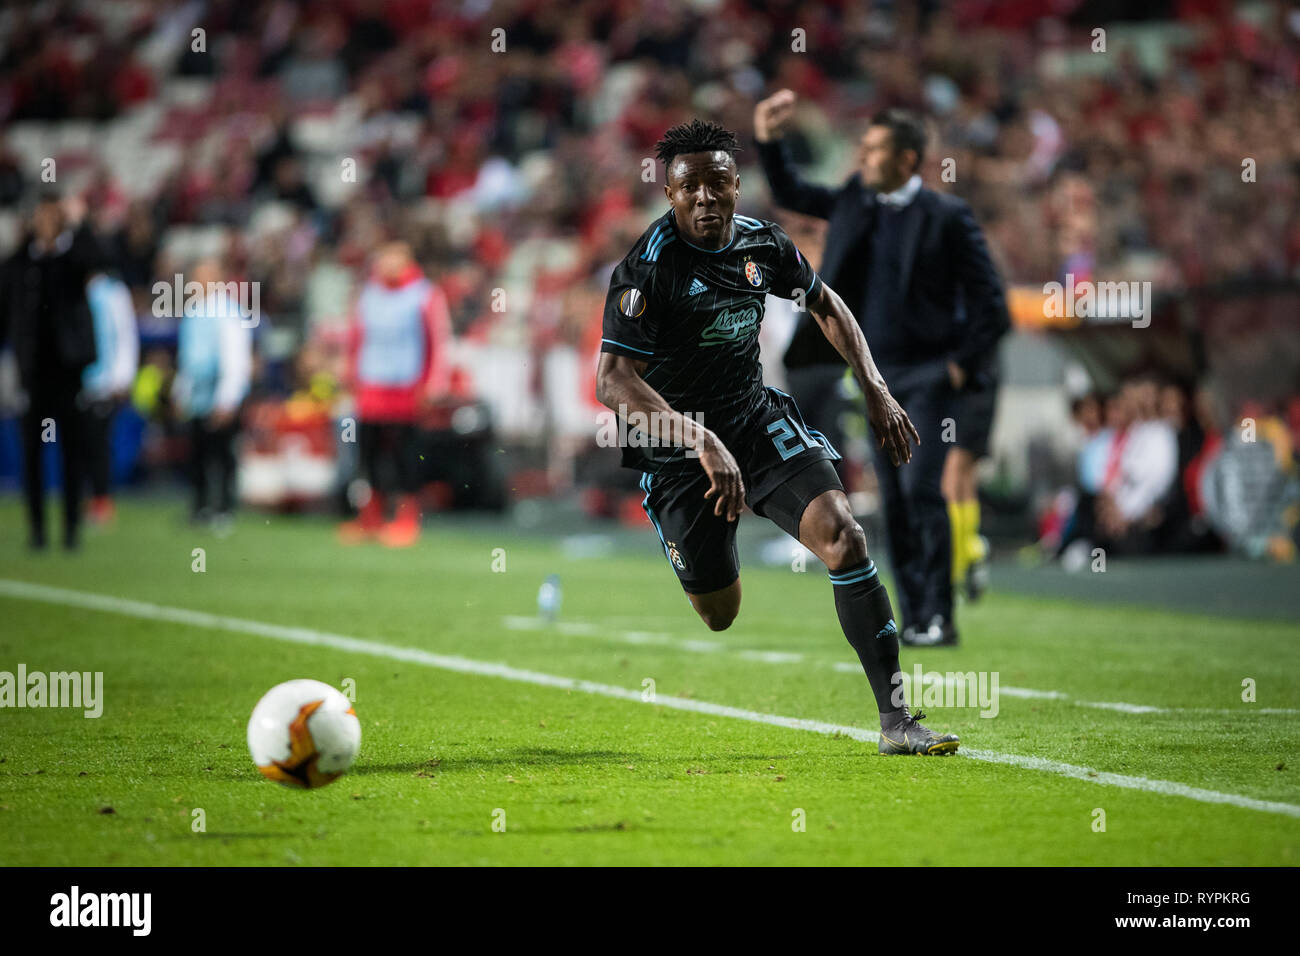 Iyayi Atiemwen Of Gnk Dinamo Zagreb In Action During The